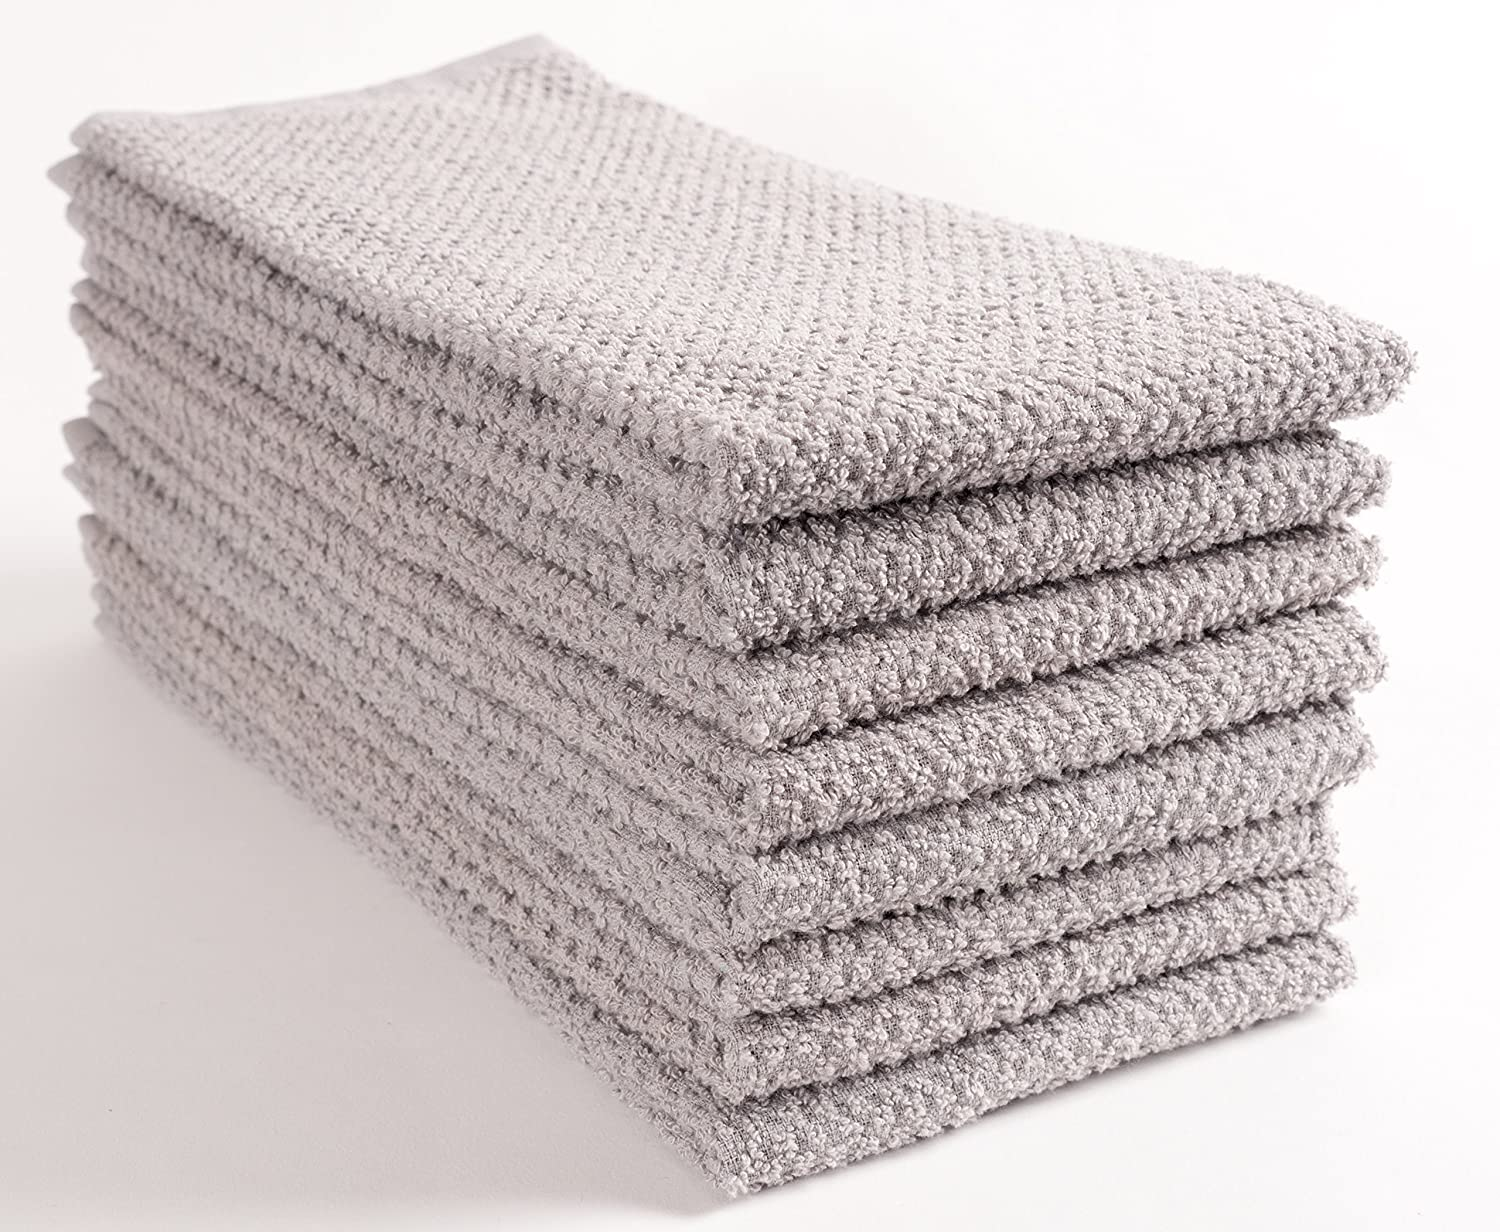 100/% Cotton Set of 8, 16x26 inches Grey Ultra Absorbent Terry Towels KAF Home Pantry Montclair Kitchen Towels